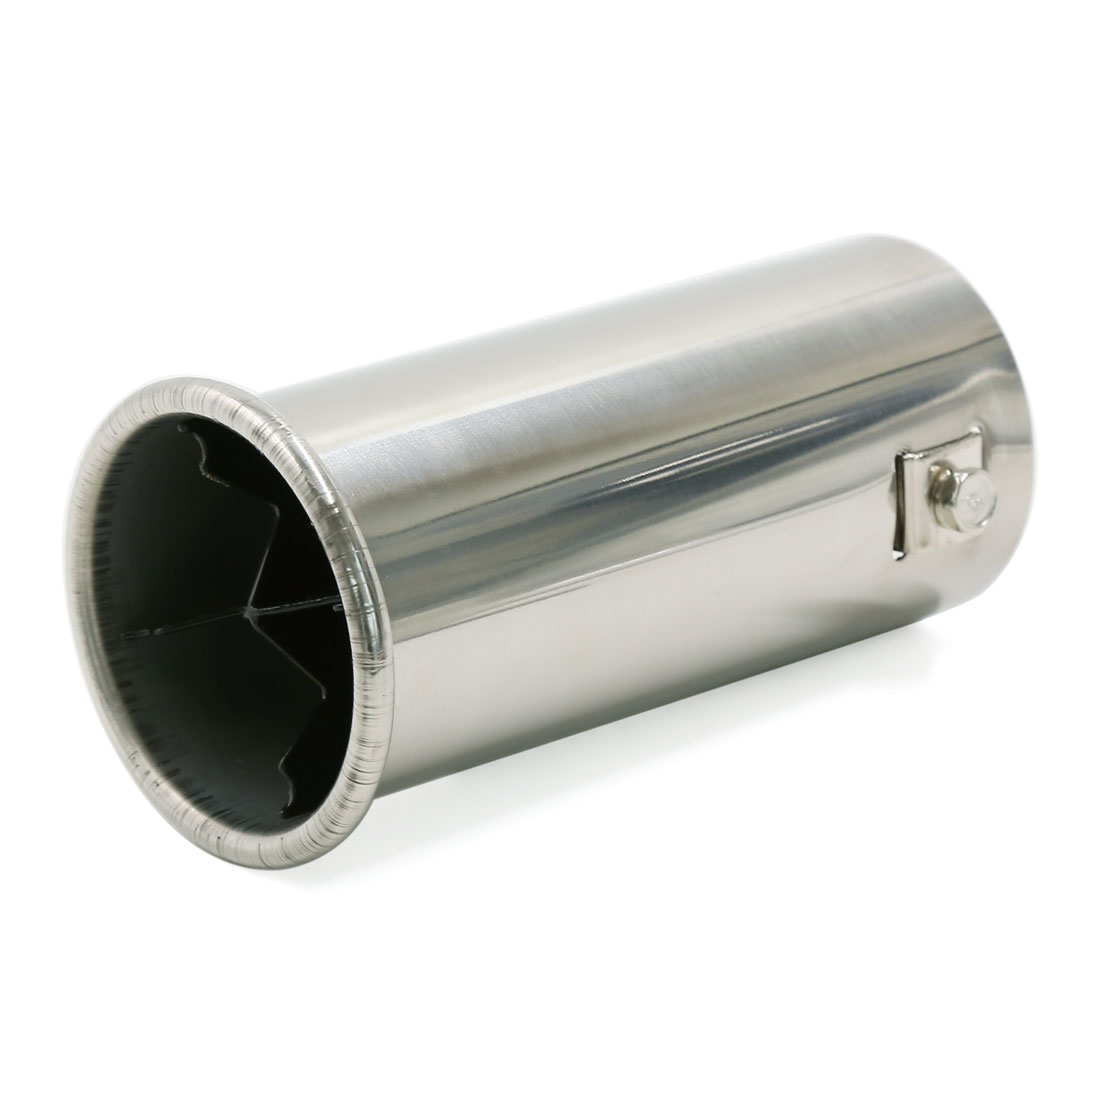 60mm Inlet Stainless Steel Straight Rear Exhaust Pipe Muffler for Car Vehicle